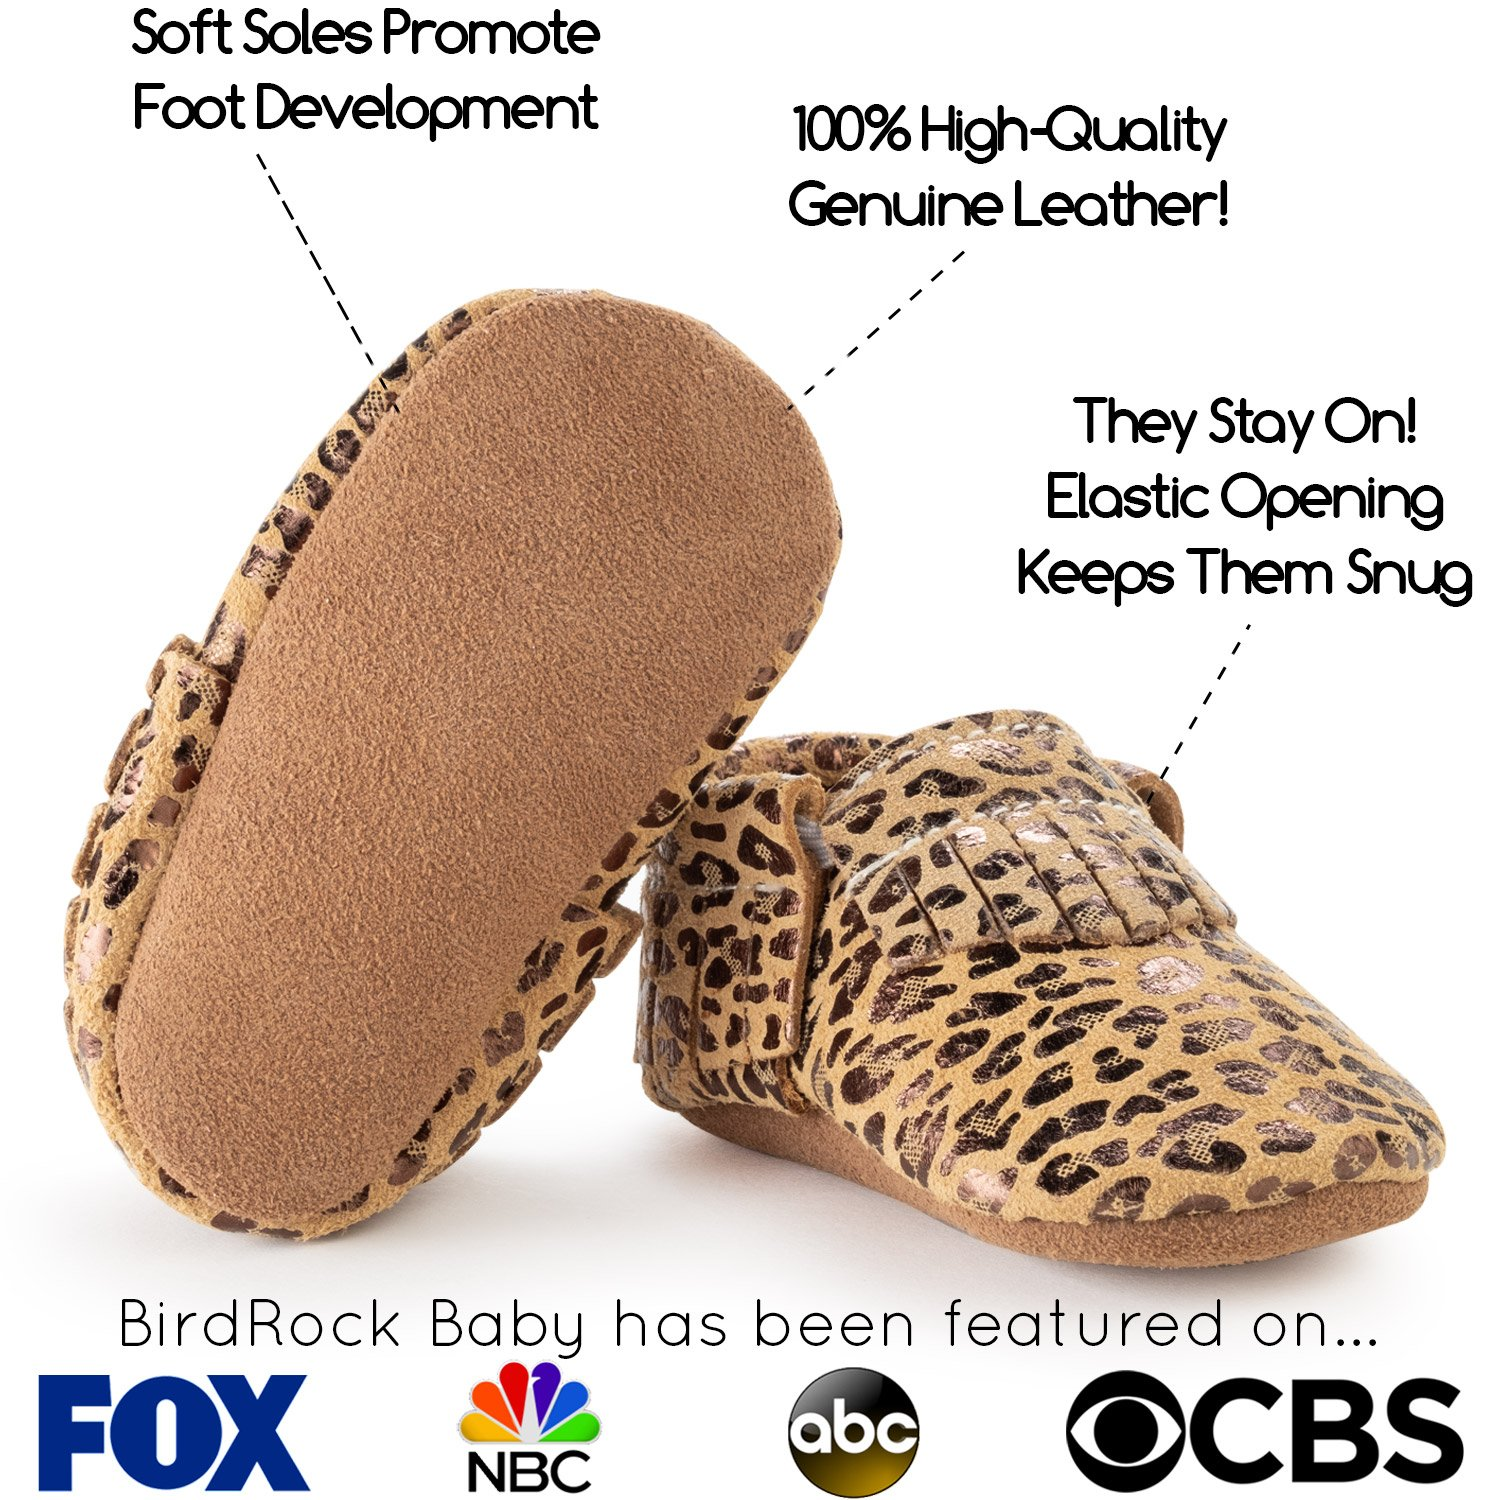 BirdRock Baby Moccasins 30 Every Pair Feeds a Child Styles ...